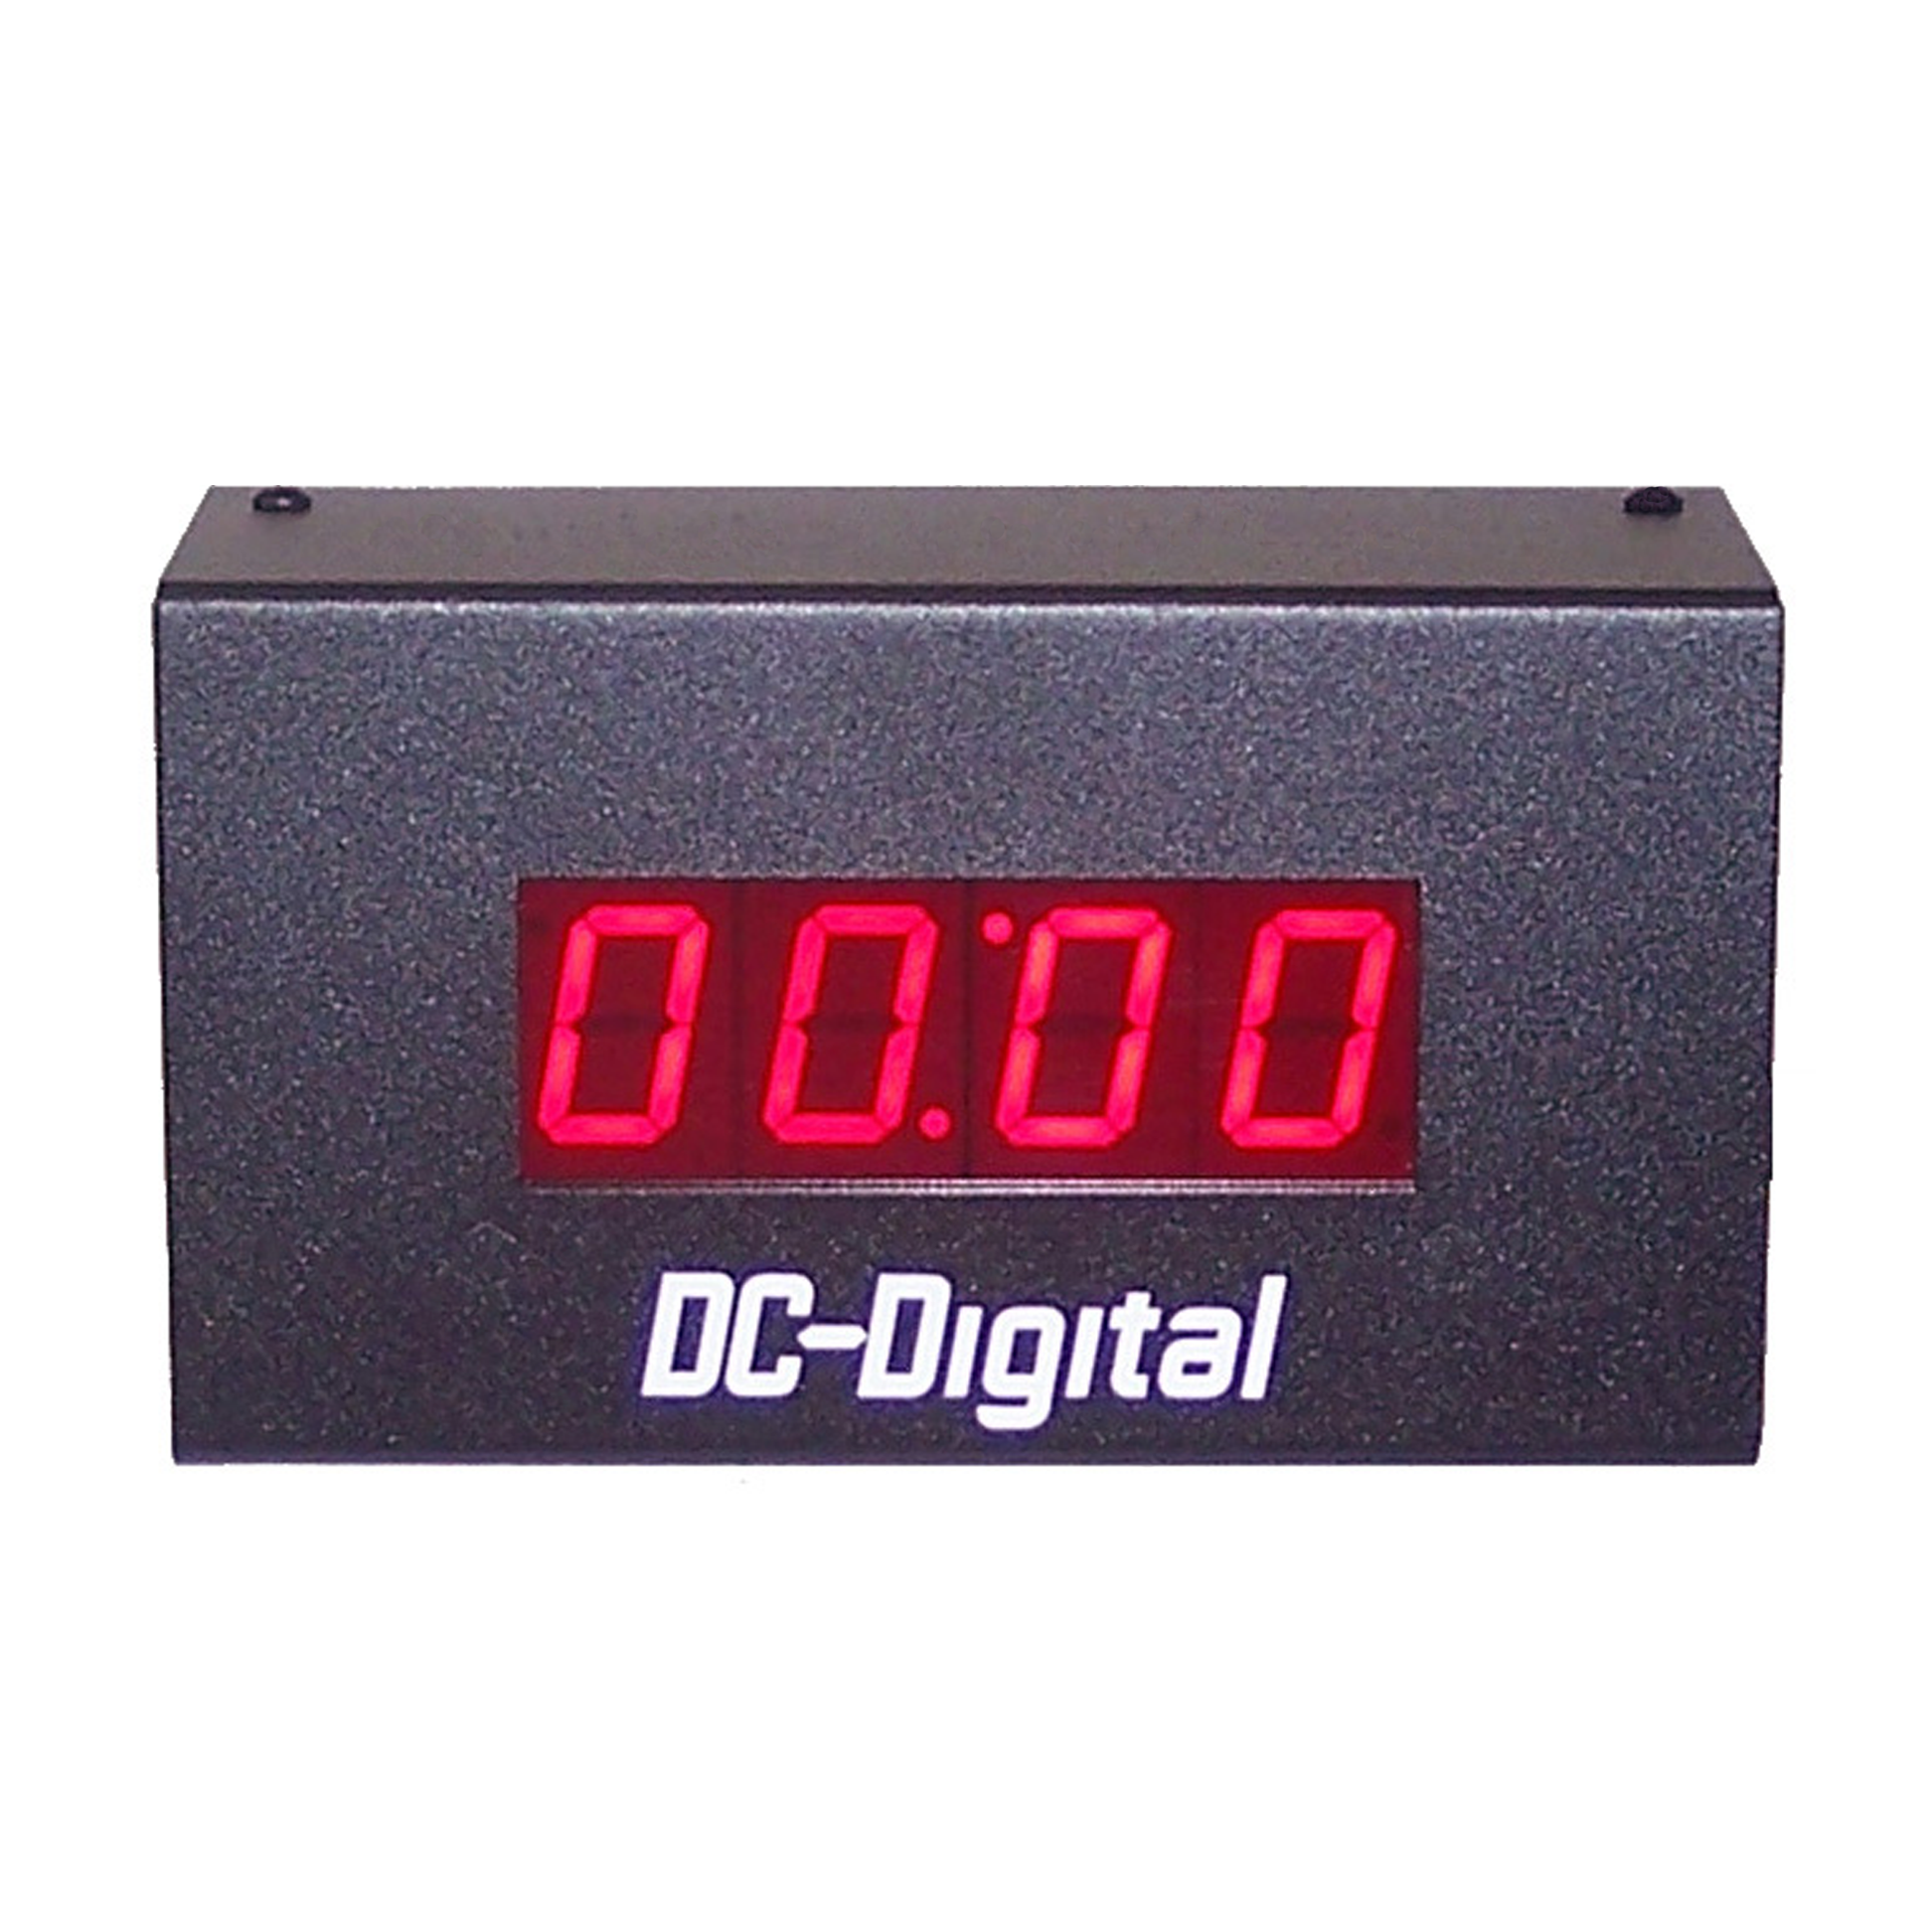 DC-10T-UP-Term-Multi-Input-Terminal-Block-Connect-Count-Up-Timer-1-Inch-Digits